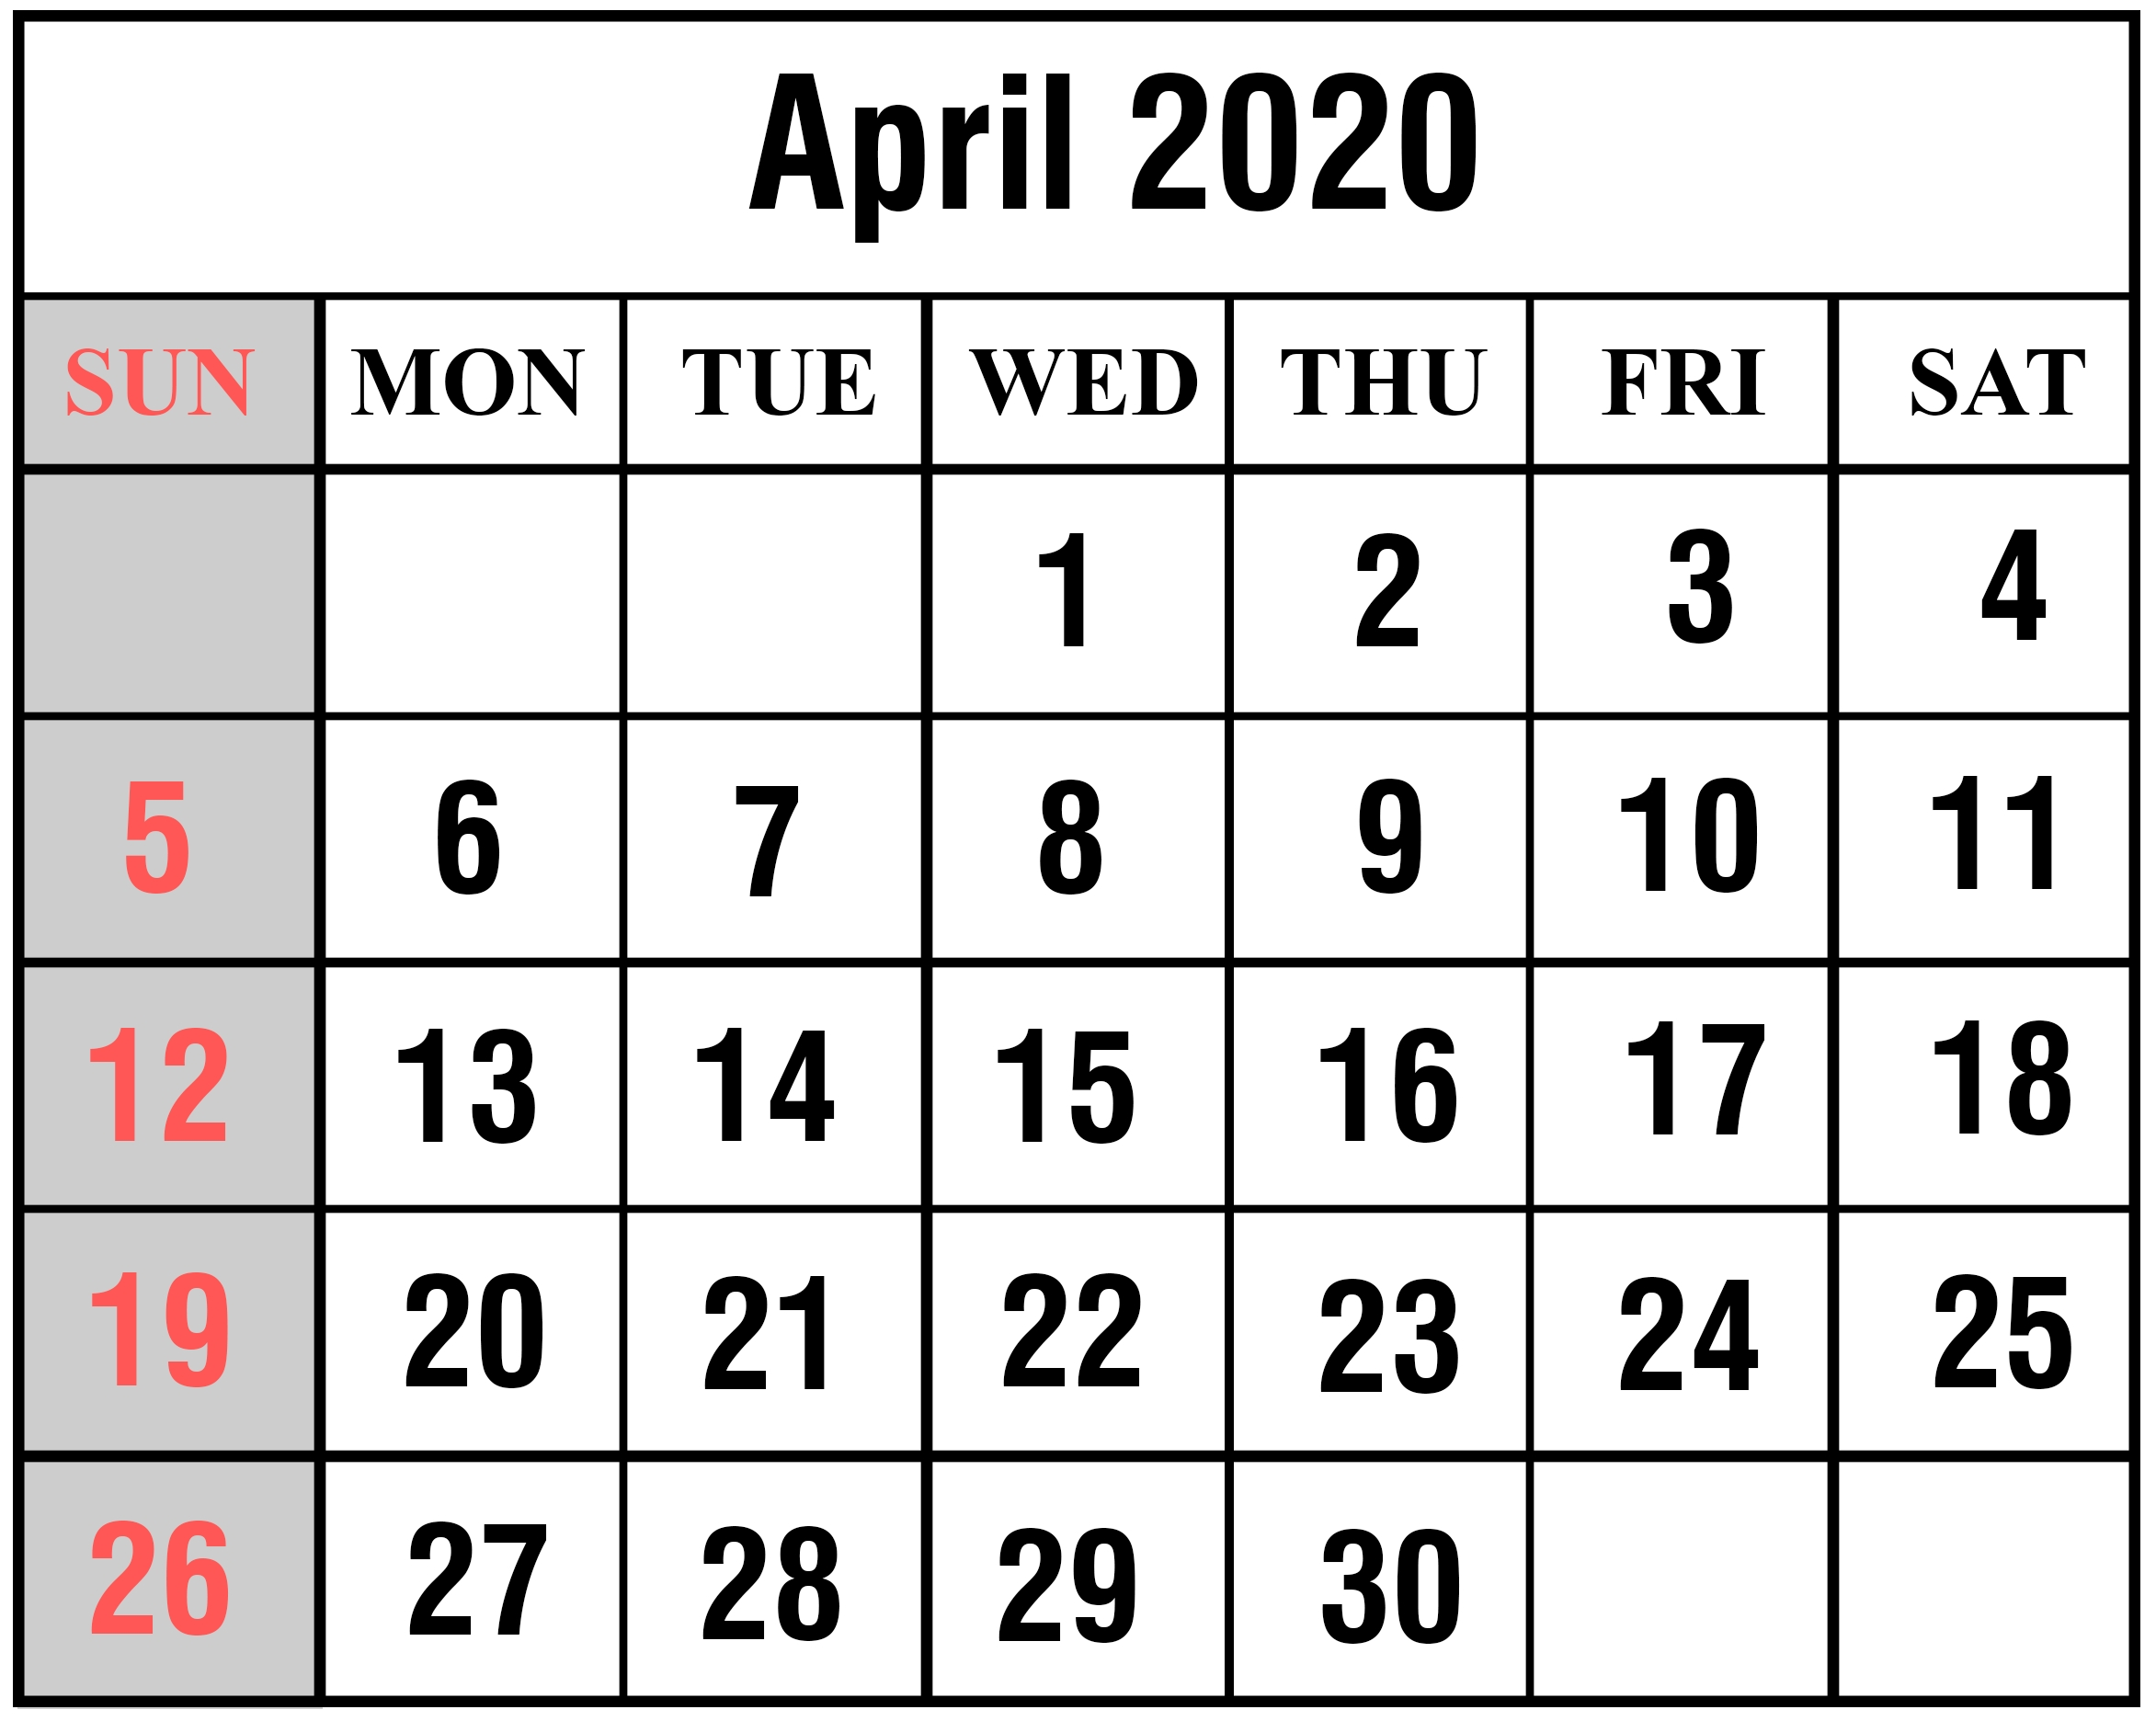 April 2020 Calendar Printable | Monthly Calendar Template